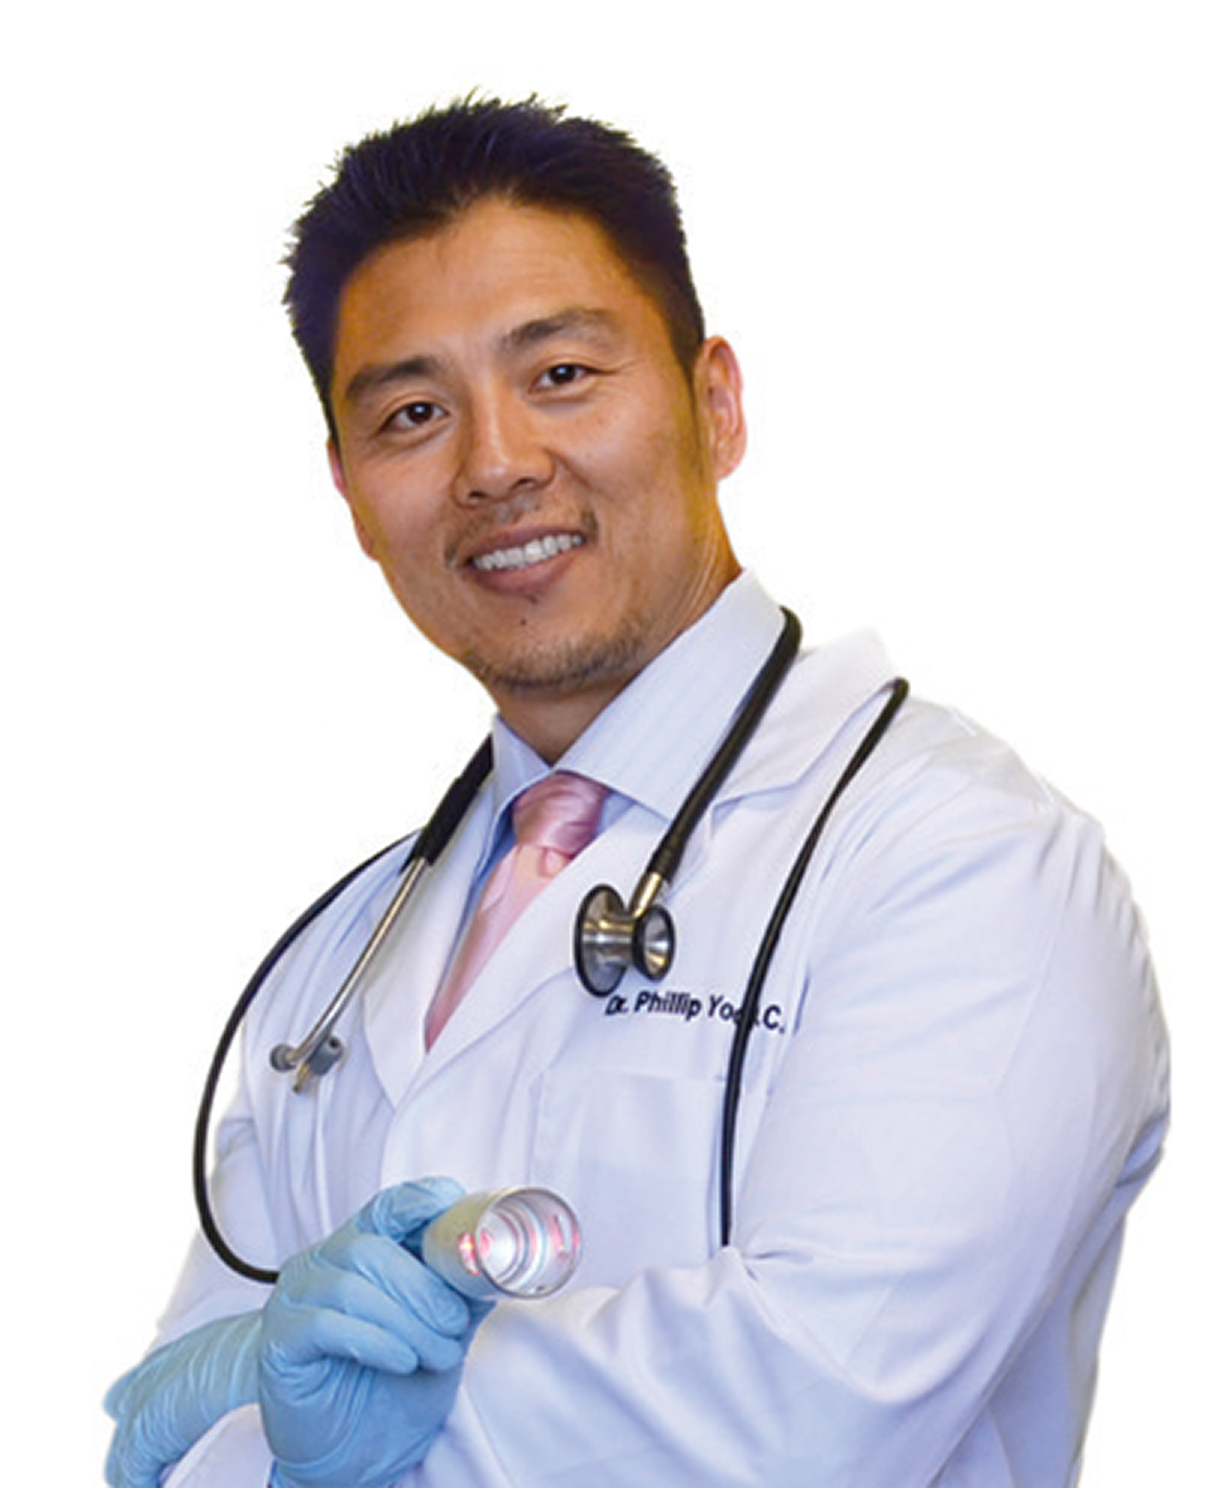 dr.phillip-yoo_large